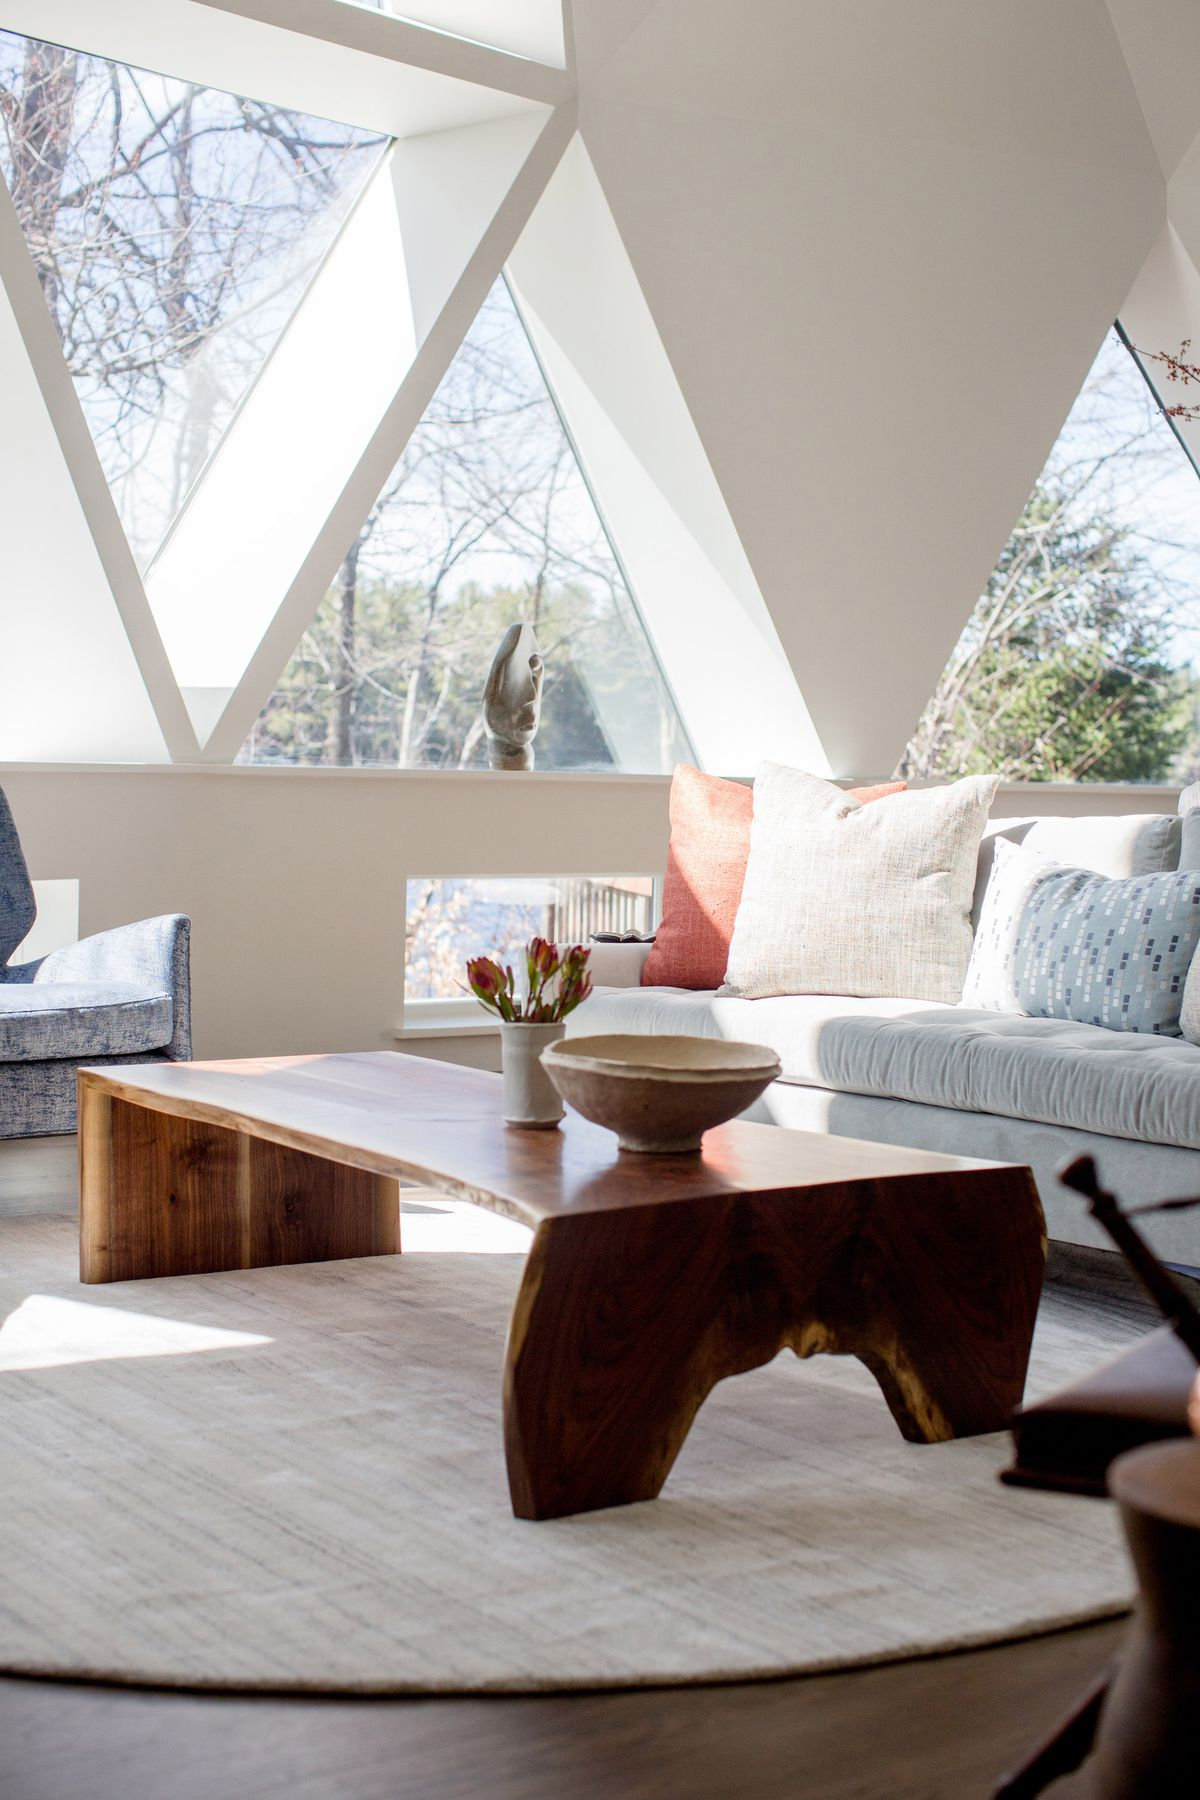 Living room with a gray couch and wooden coffee table in front of triangular windows.